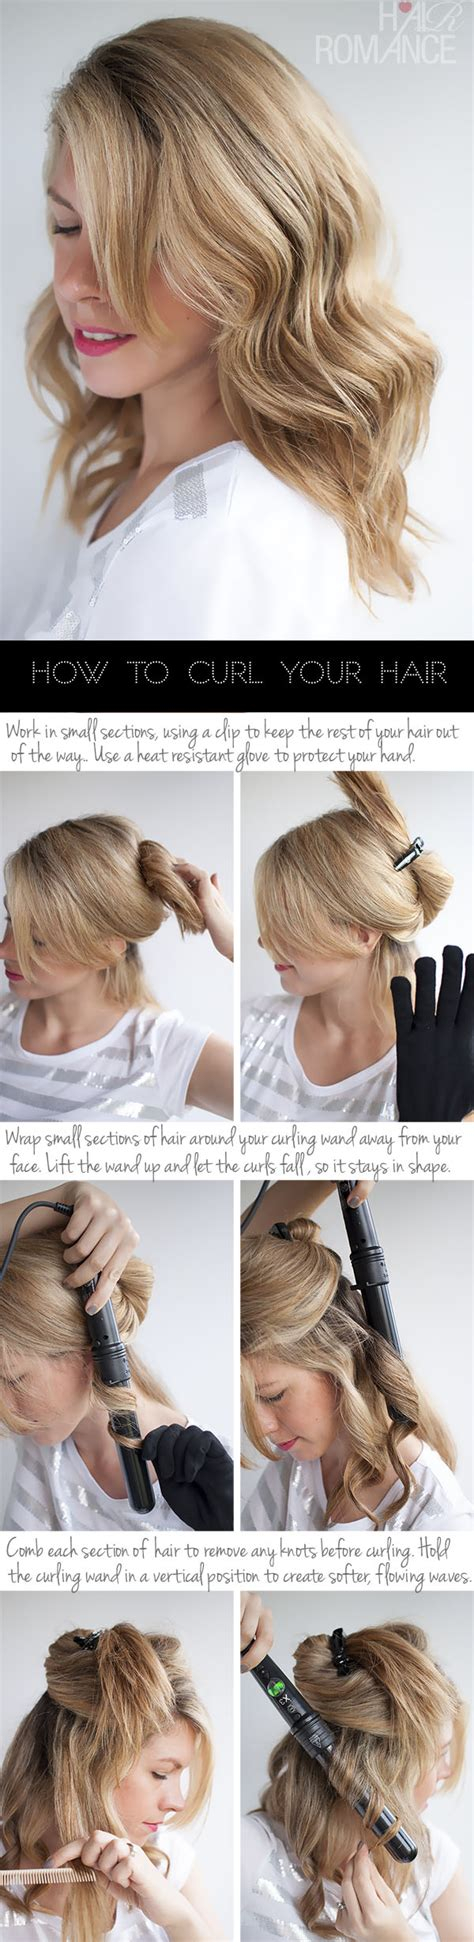 hair tutorial wand some tips on how to make your straight hair curly and